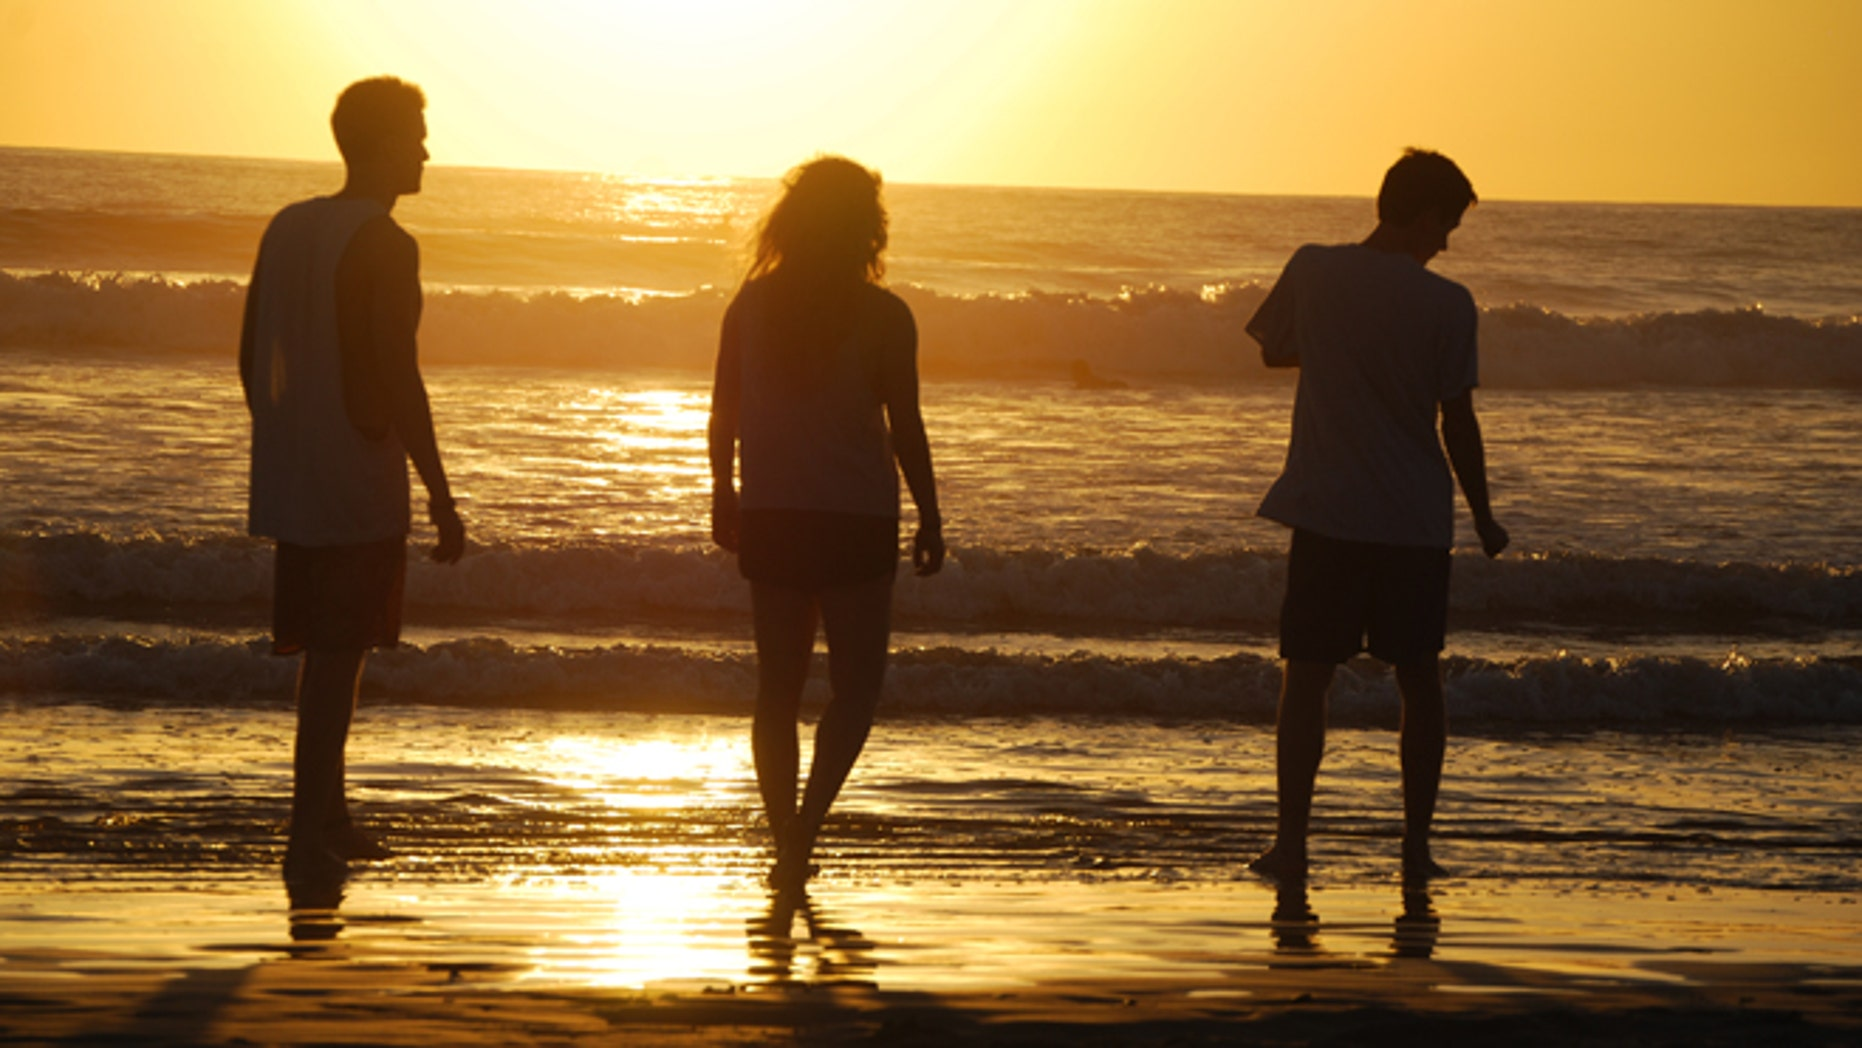 This February 2014 photo released by Kristina MacKulin shows, from left, Liam Godfrey-Jolicoeur, Ruby Dombek and Jacob Dombek of N. Ferrisburg Vt. watching the sunset at Playa Guiones in Nosara, Costa Rica. Nosara is a scenic coastal region with a variety of outdoor recreation activities for visitors. (AP Photo/Kristina MacKulin)